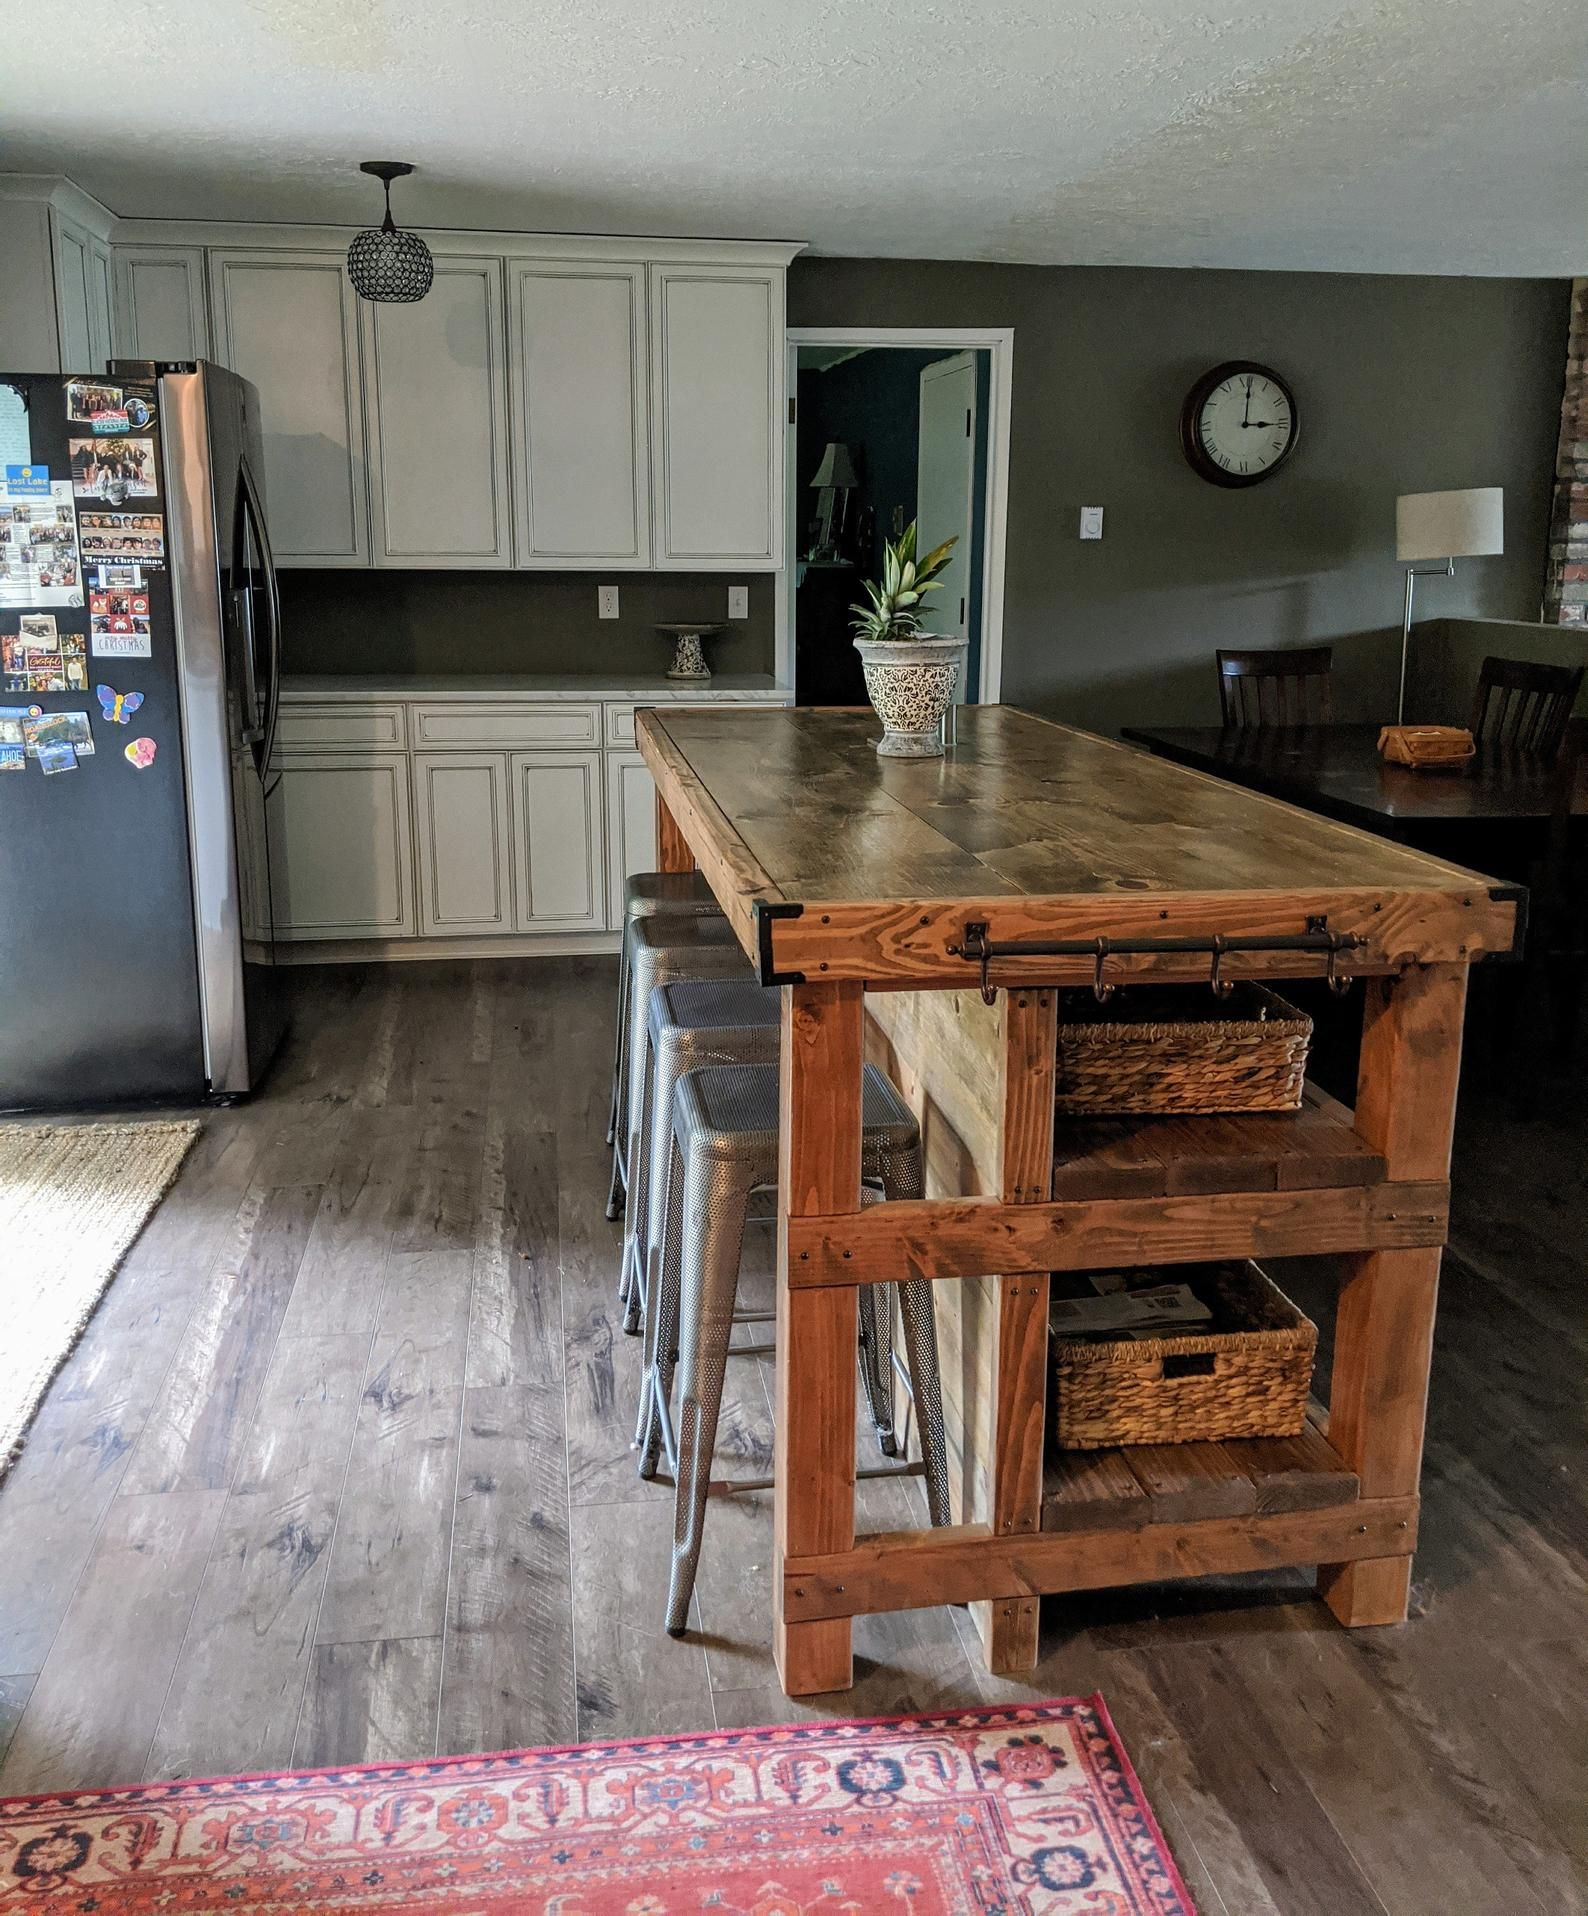 Wood kitchen island with seating area | Etsy